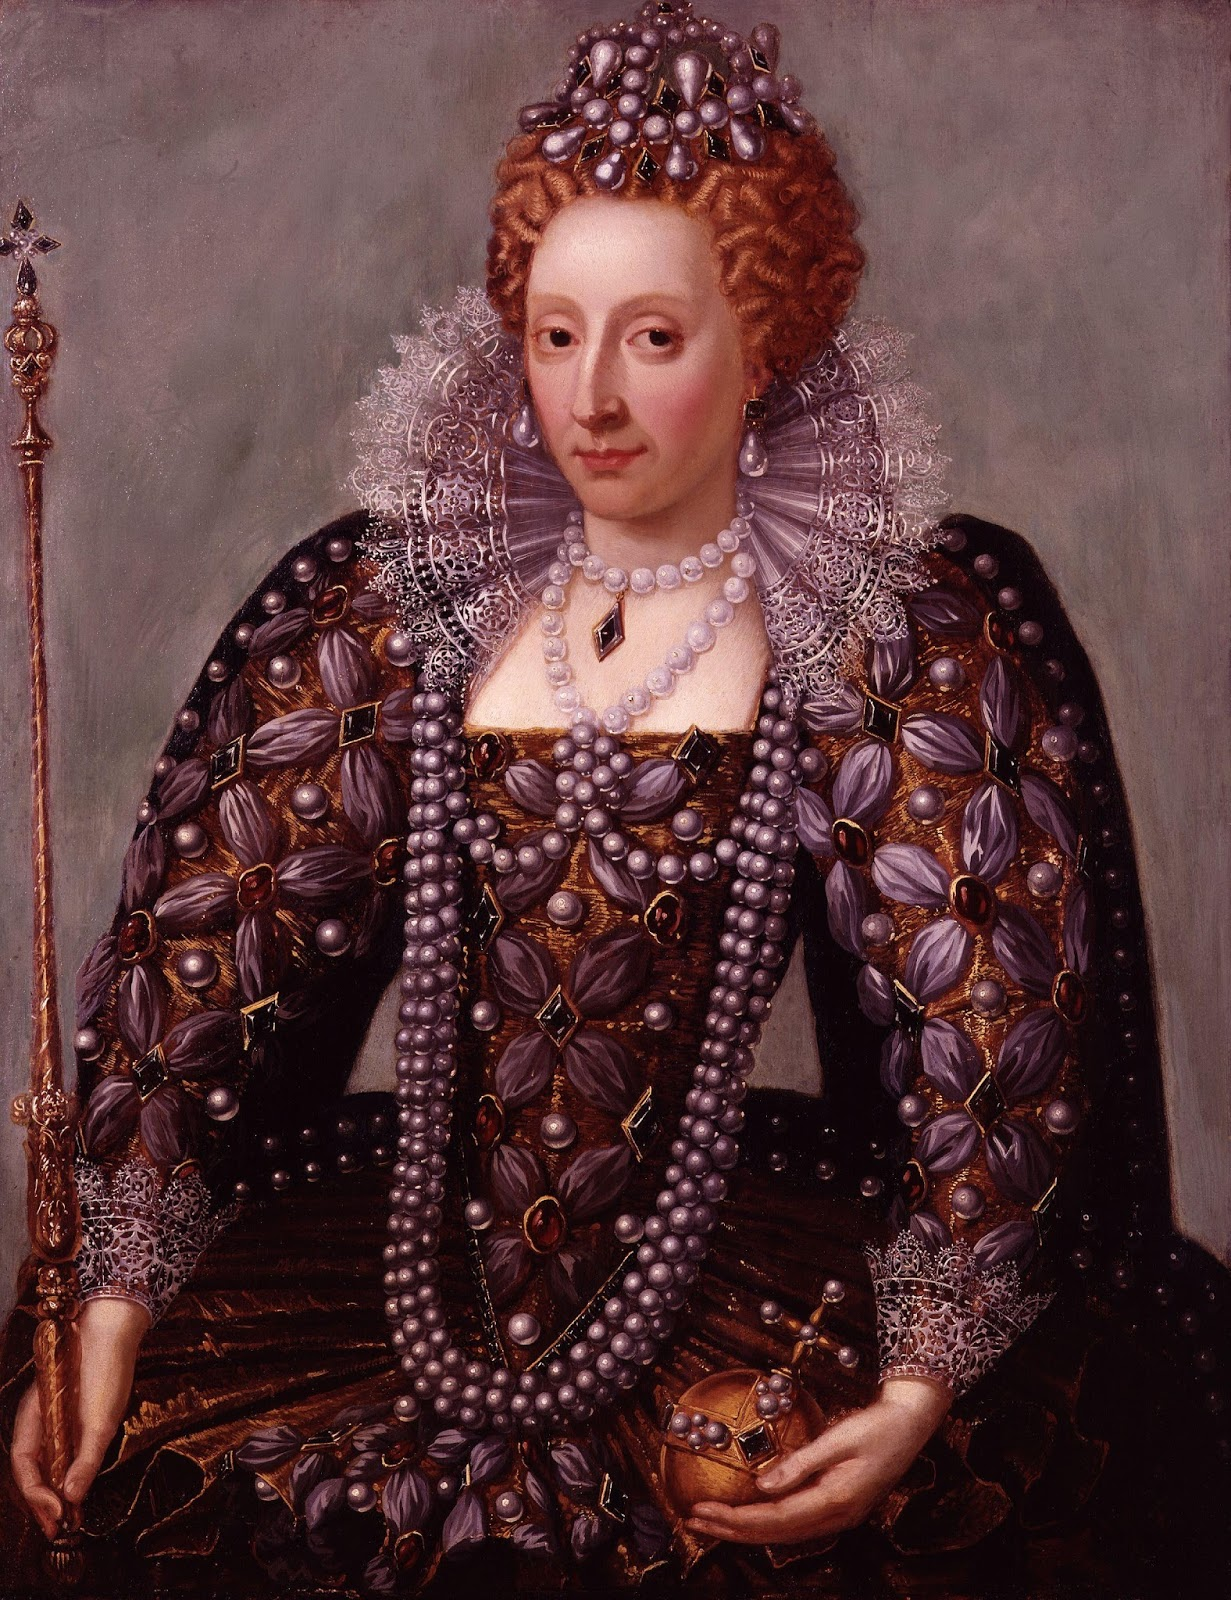 life and influence of queen elizabeth on england Queen elizabeth: shakespeare's patron and used her influence in the progress of the english drama king james i of england: shakespeare's patron.